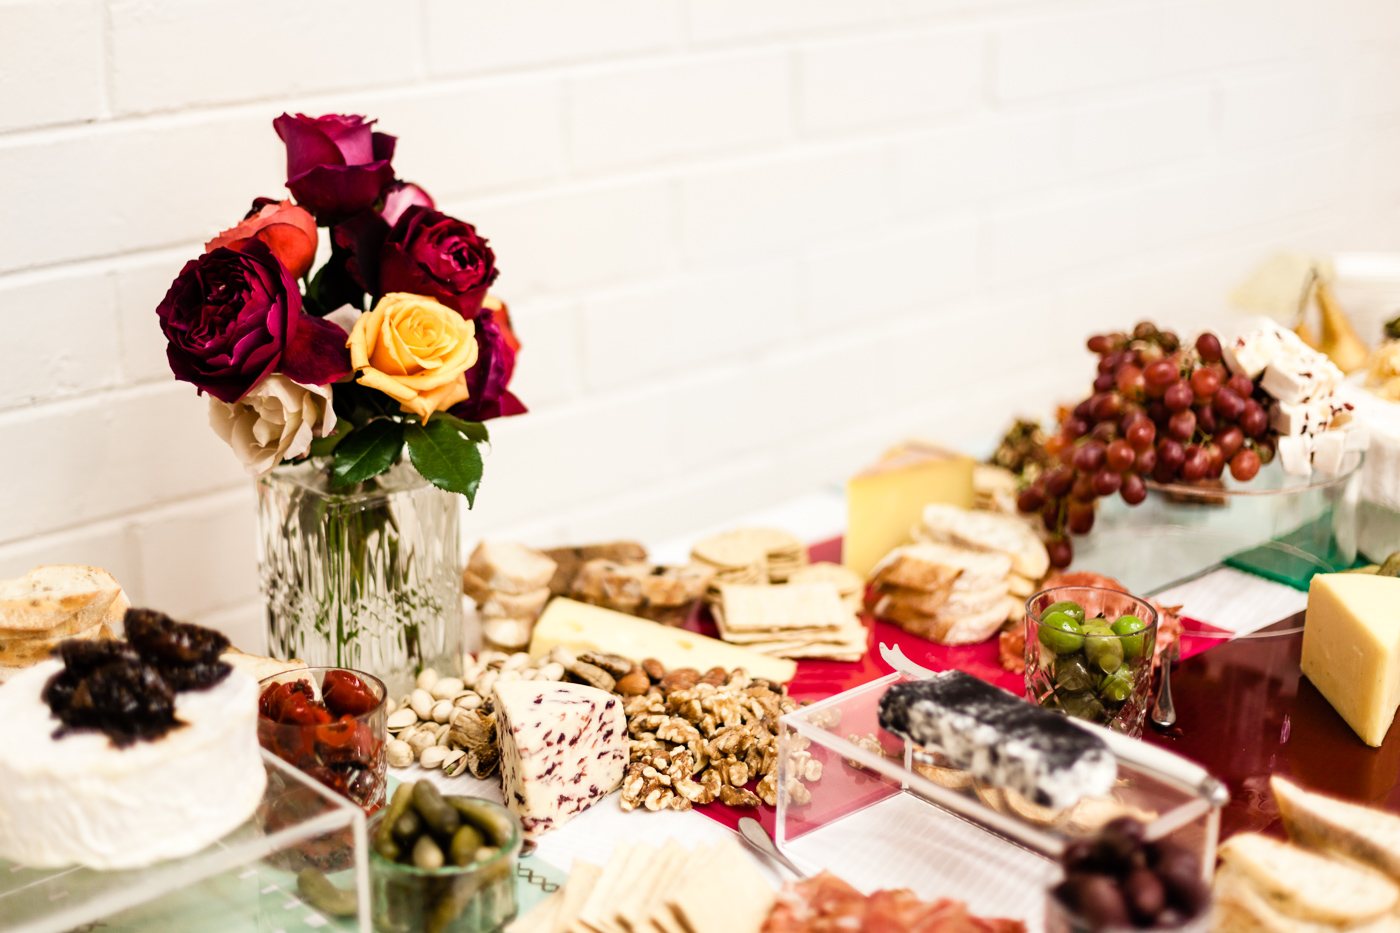 Grazing Table |NEW AGAIN by Petrina Turner Design for Designer Rugs | The launch event